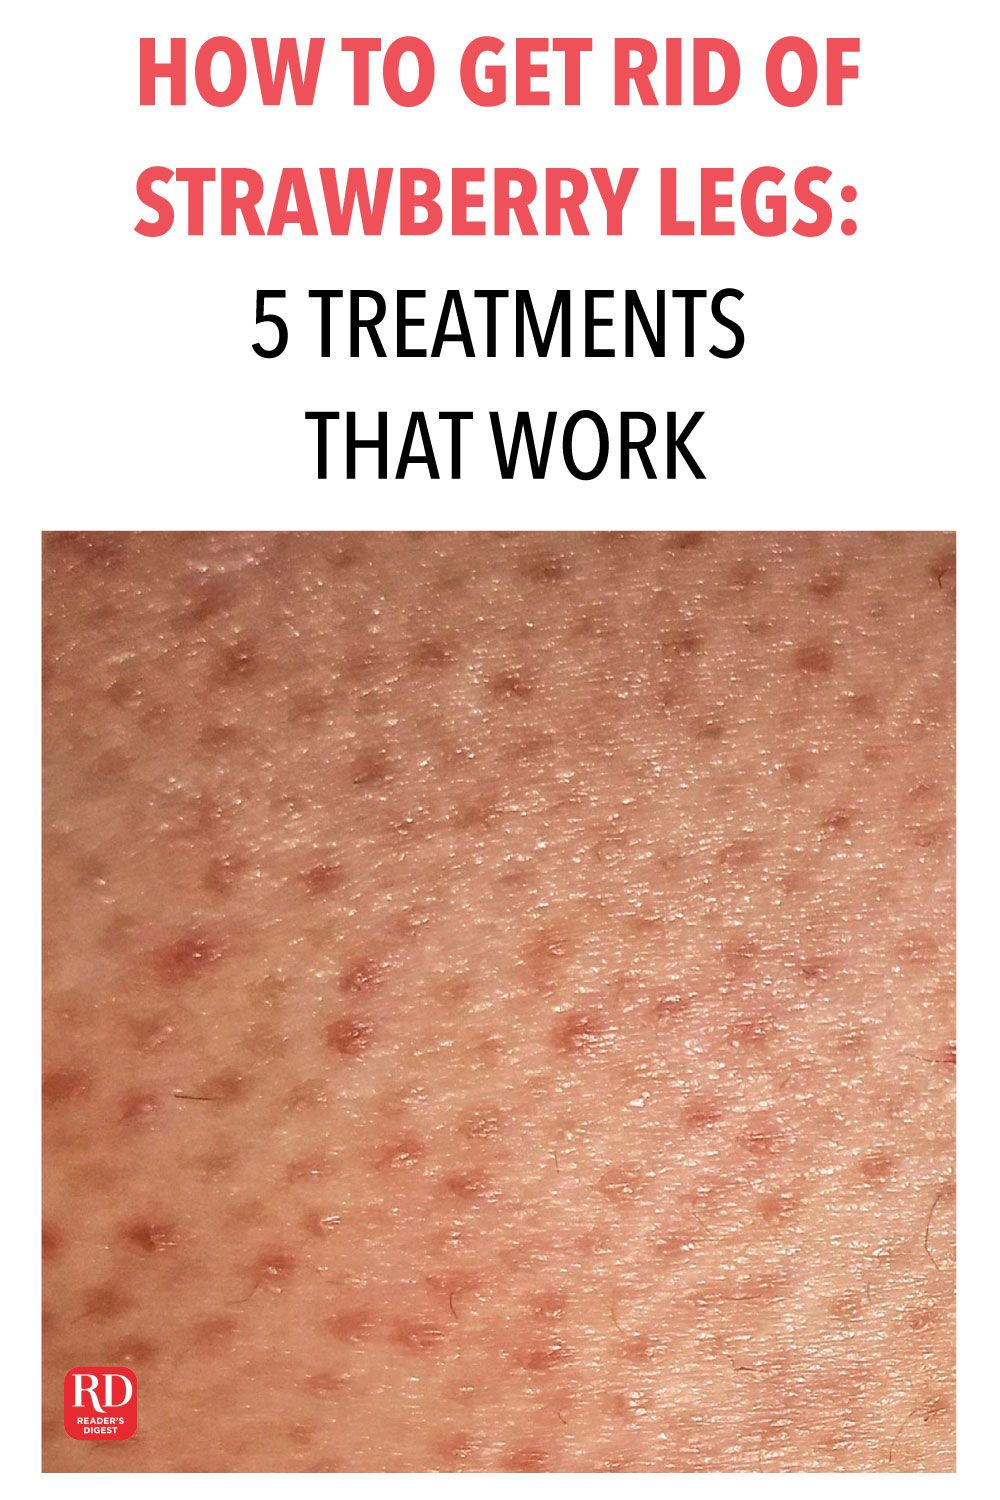 d79bc97993e2c934bc32ecd5fc0140eb - How To Get Rid Of Strawberry Spots On Legs